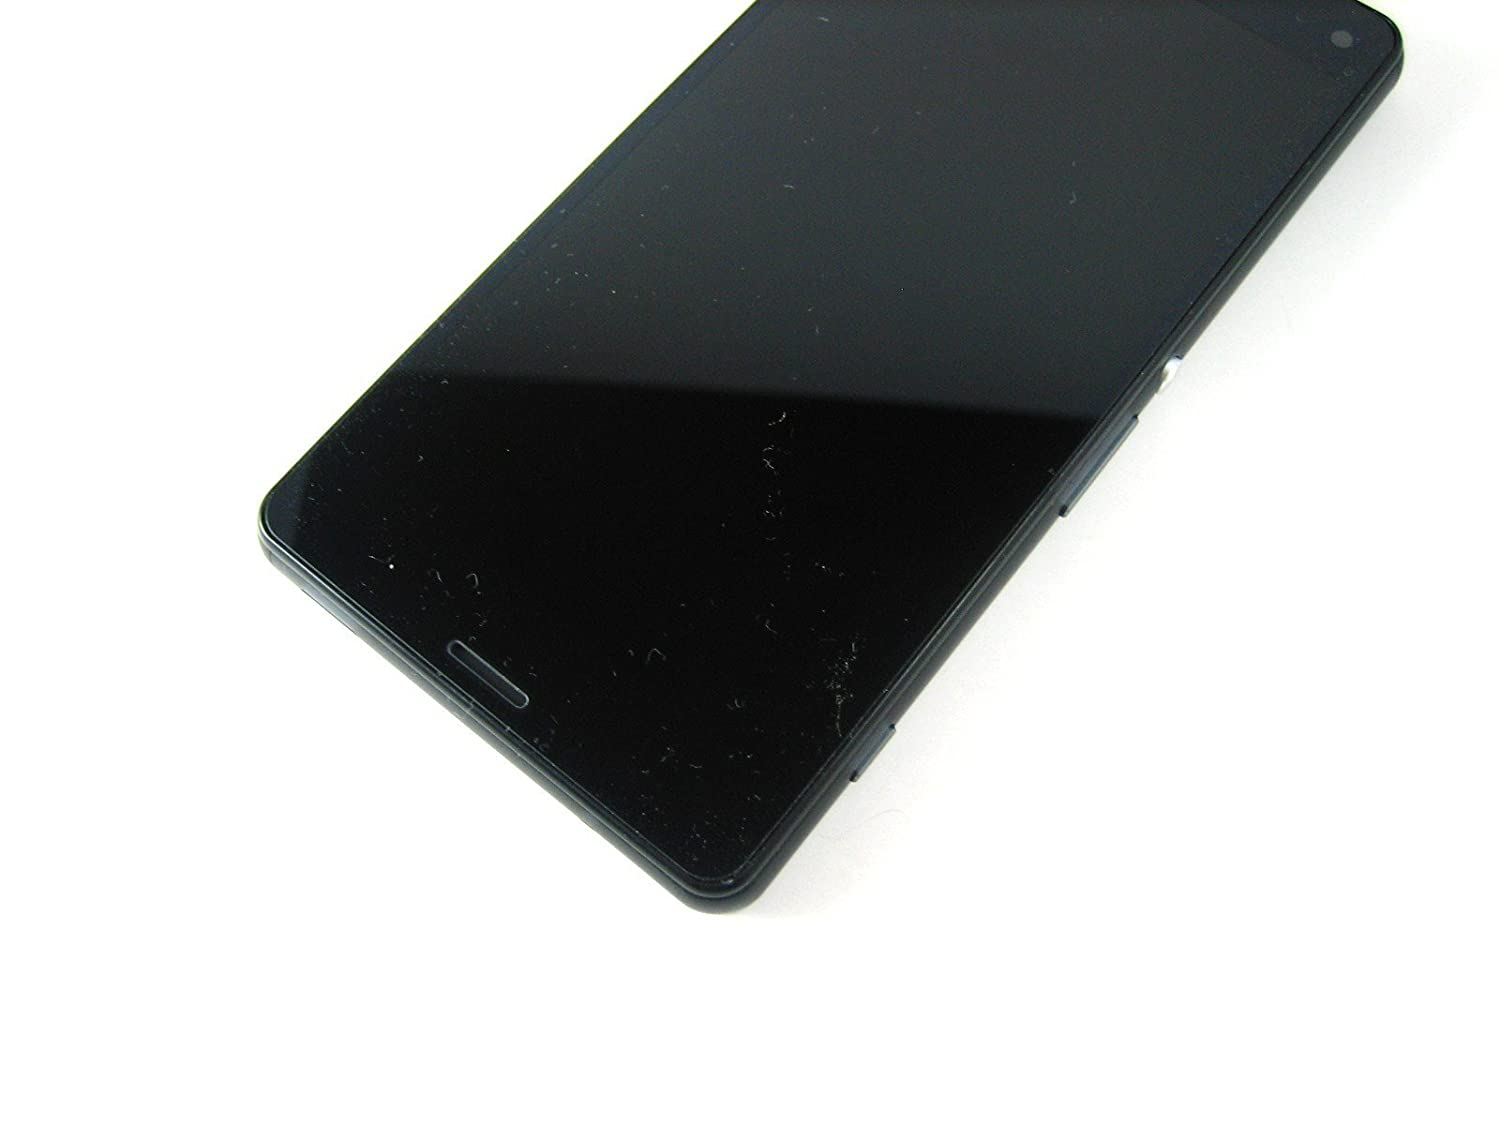 Lcd Display Touch Screen Frame For Sony Xperia Z3 D5803 D5833 Mini Compact Original Black D5833black Mobile Phone Part Cell Phones Accessories